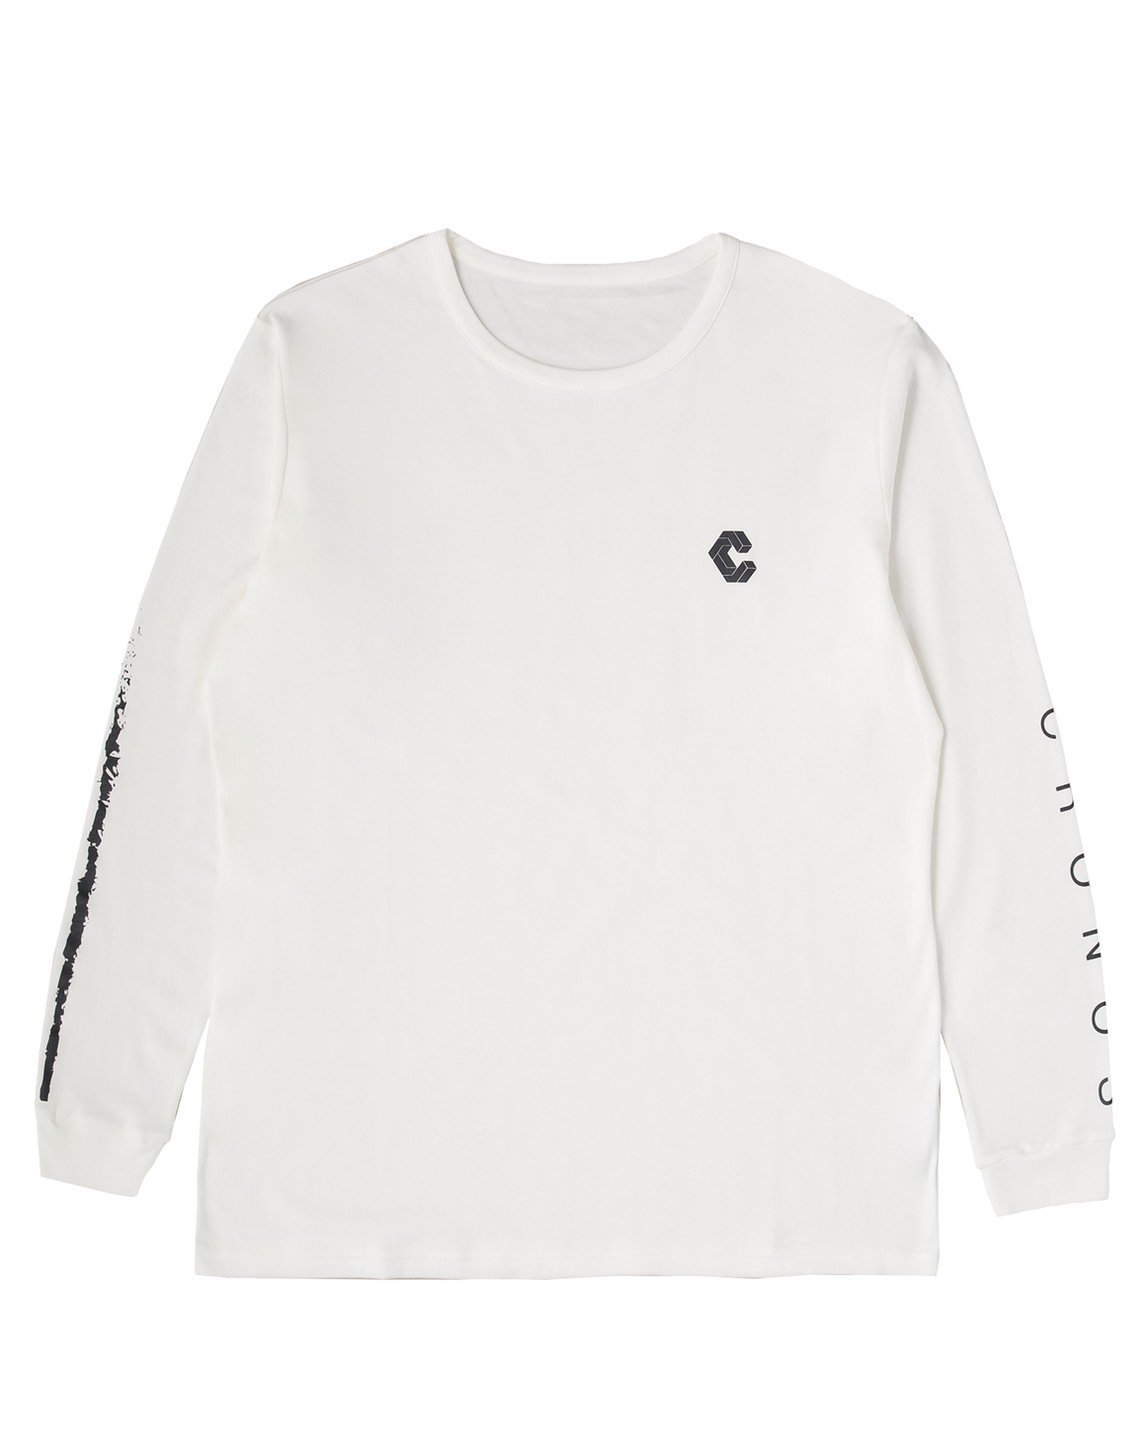 <img class='new_mark_img1' src='https://img.shop-pro.jp/img/new/icons1.gif' style='border:none;display:inline;margin:0px;padding:0px;width:auto;' />CRONOS NEW ARM LOGO LONG SLEEVE【WHITE】